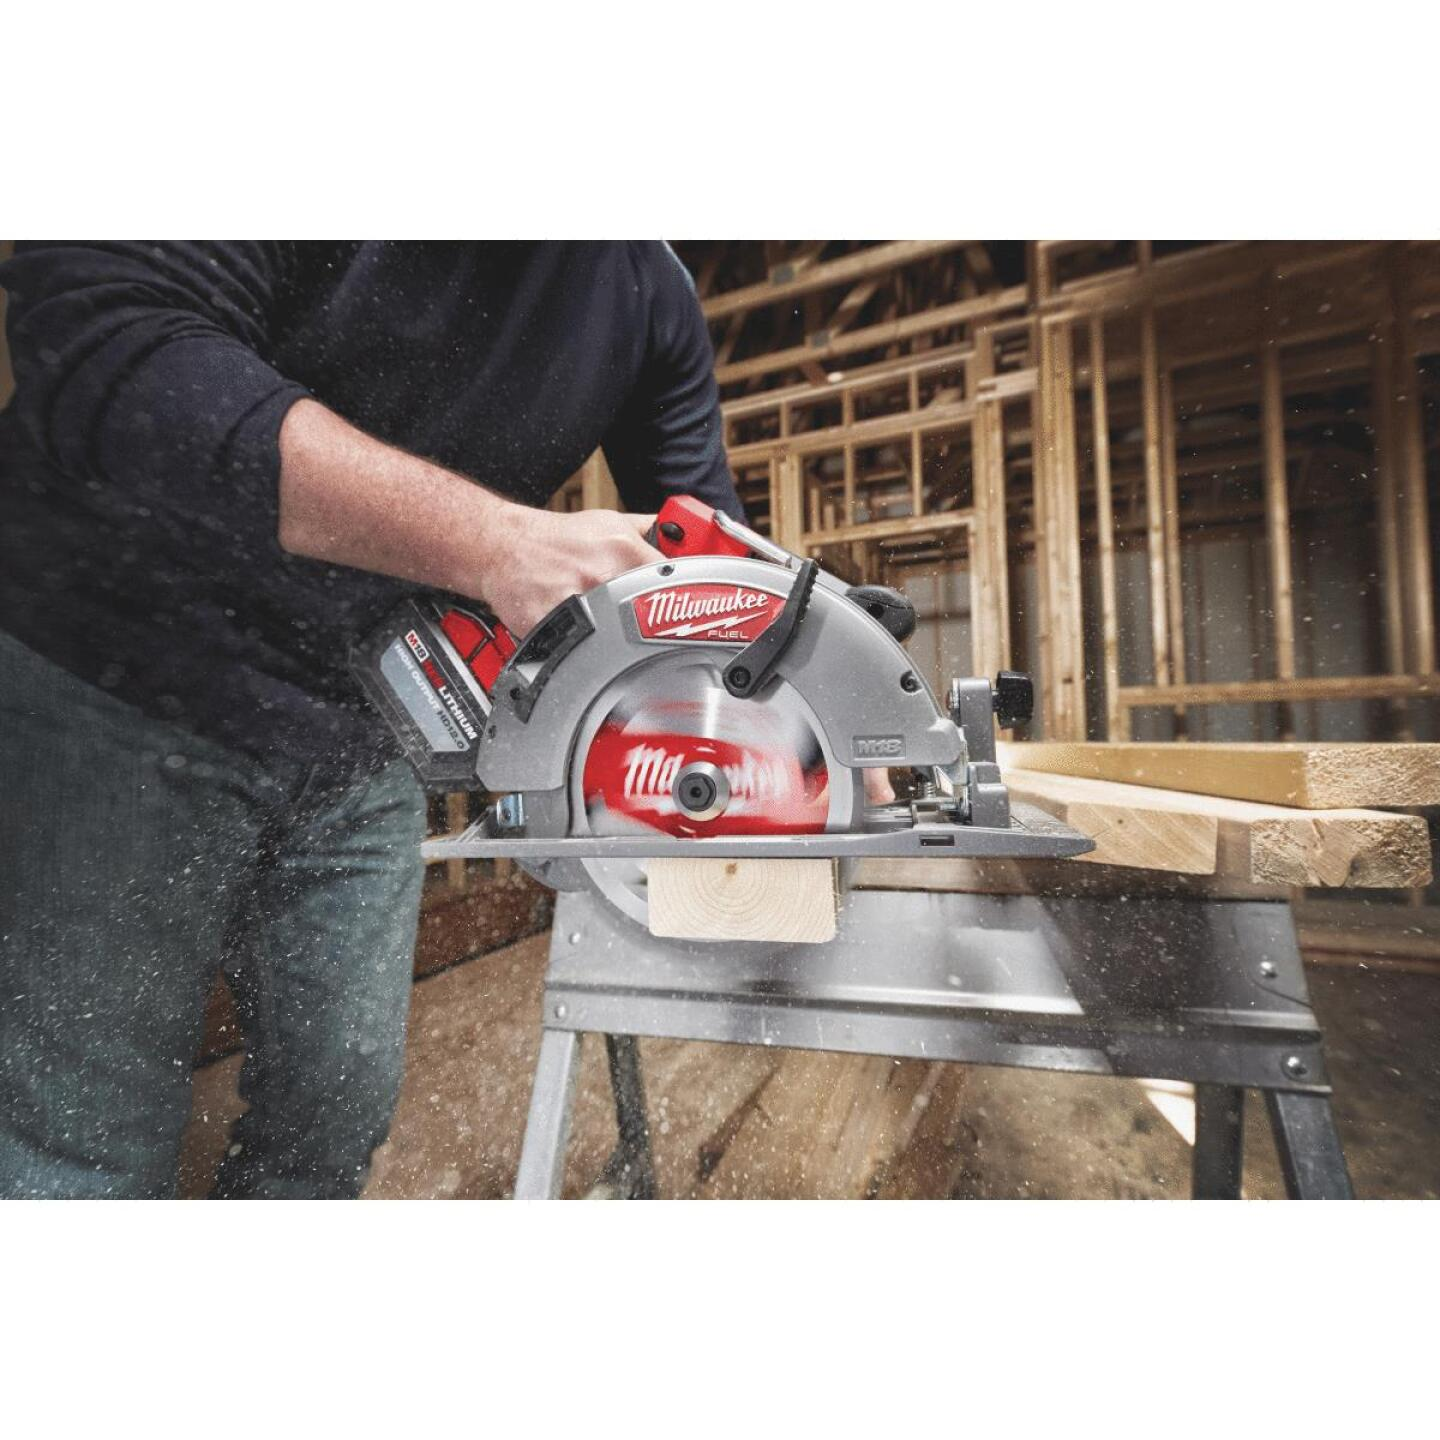 Milwaukee M18 FUEL 18 Volt Lithium-Ion Brushless 7-1/4 In. Cordless Circular Saw Kit Image 2